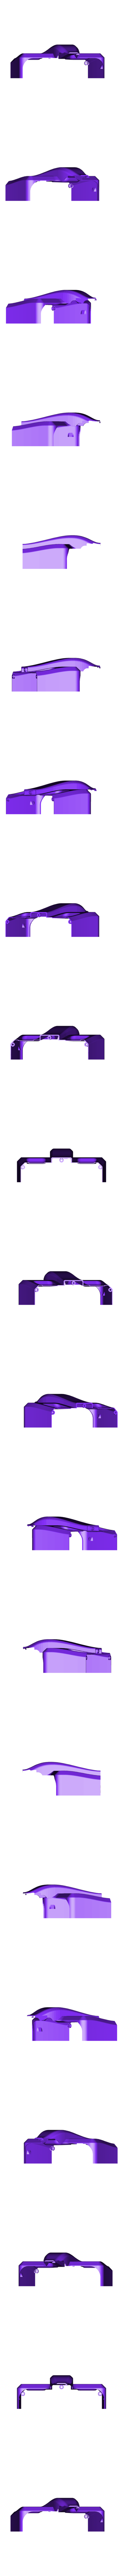 Body04.STL Download free STL file Lynx - Fully 3D-printable 1/10 4wd buggy • Object to 3D print, tahustvedt